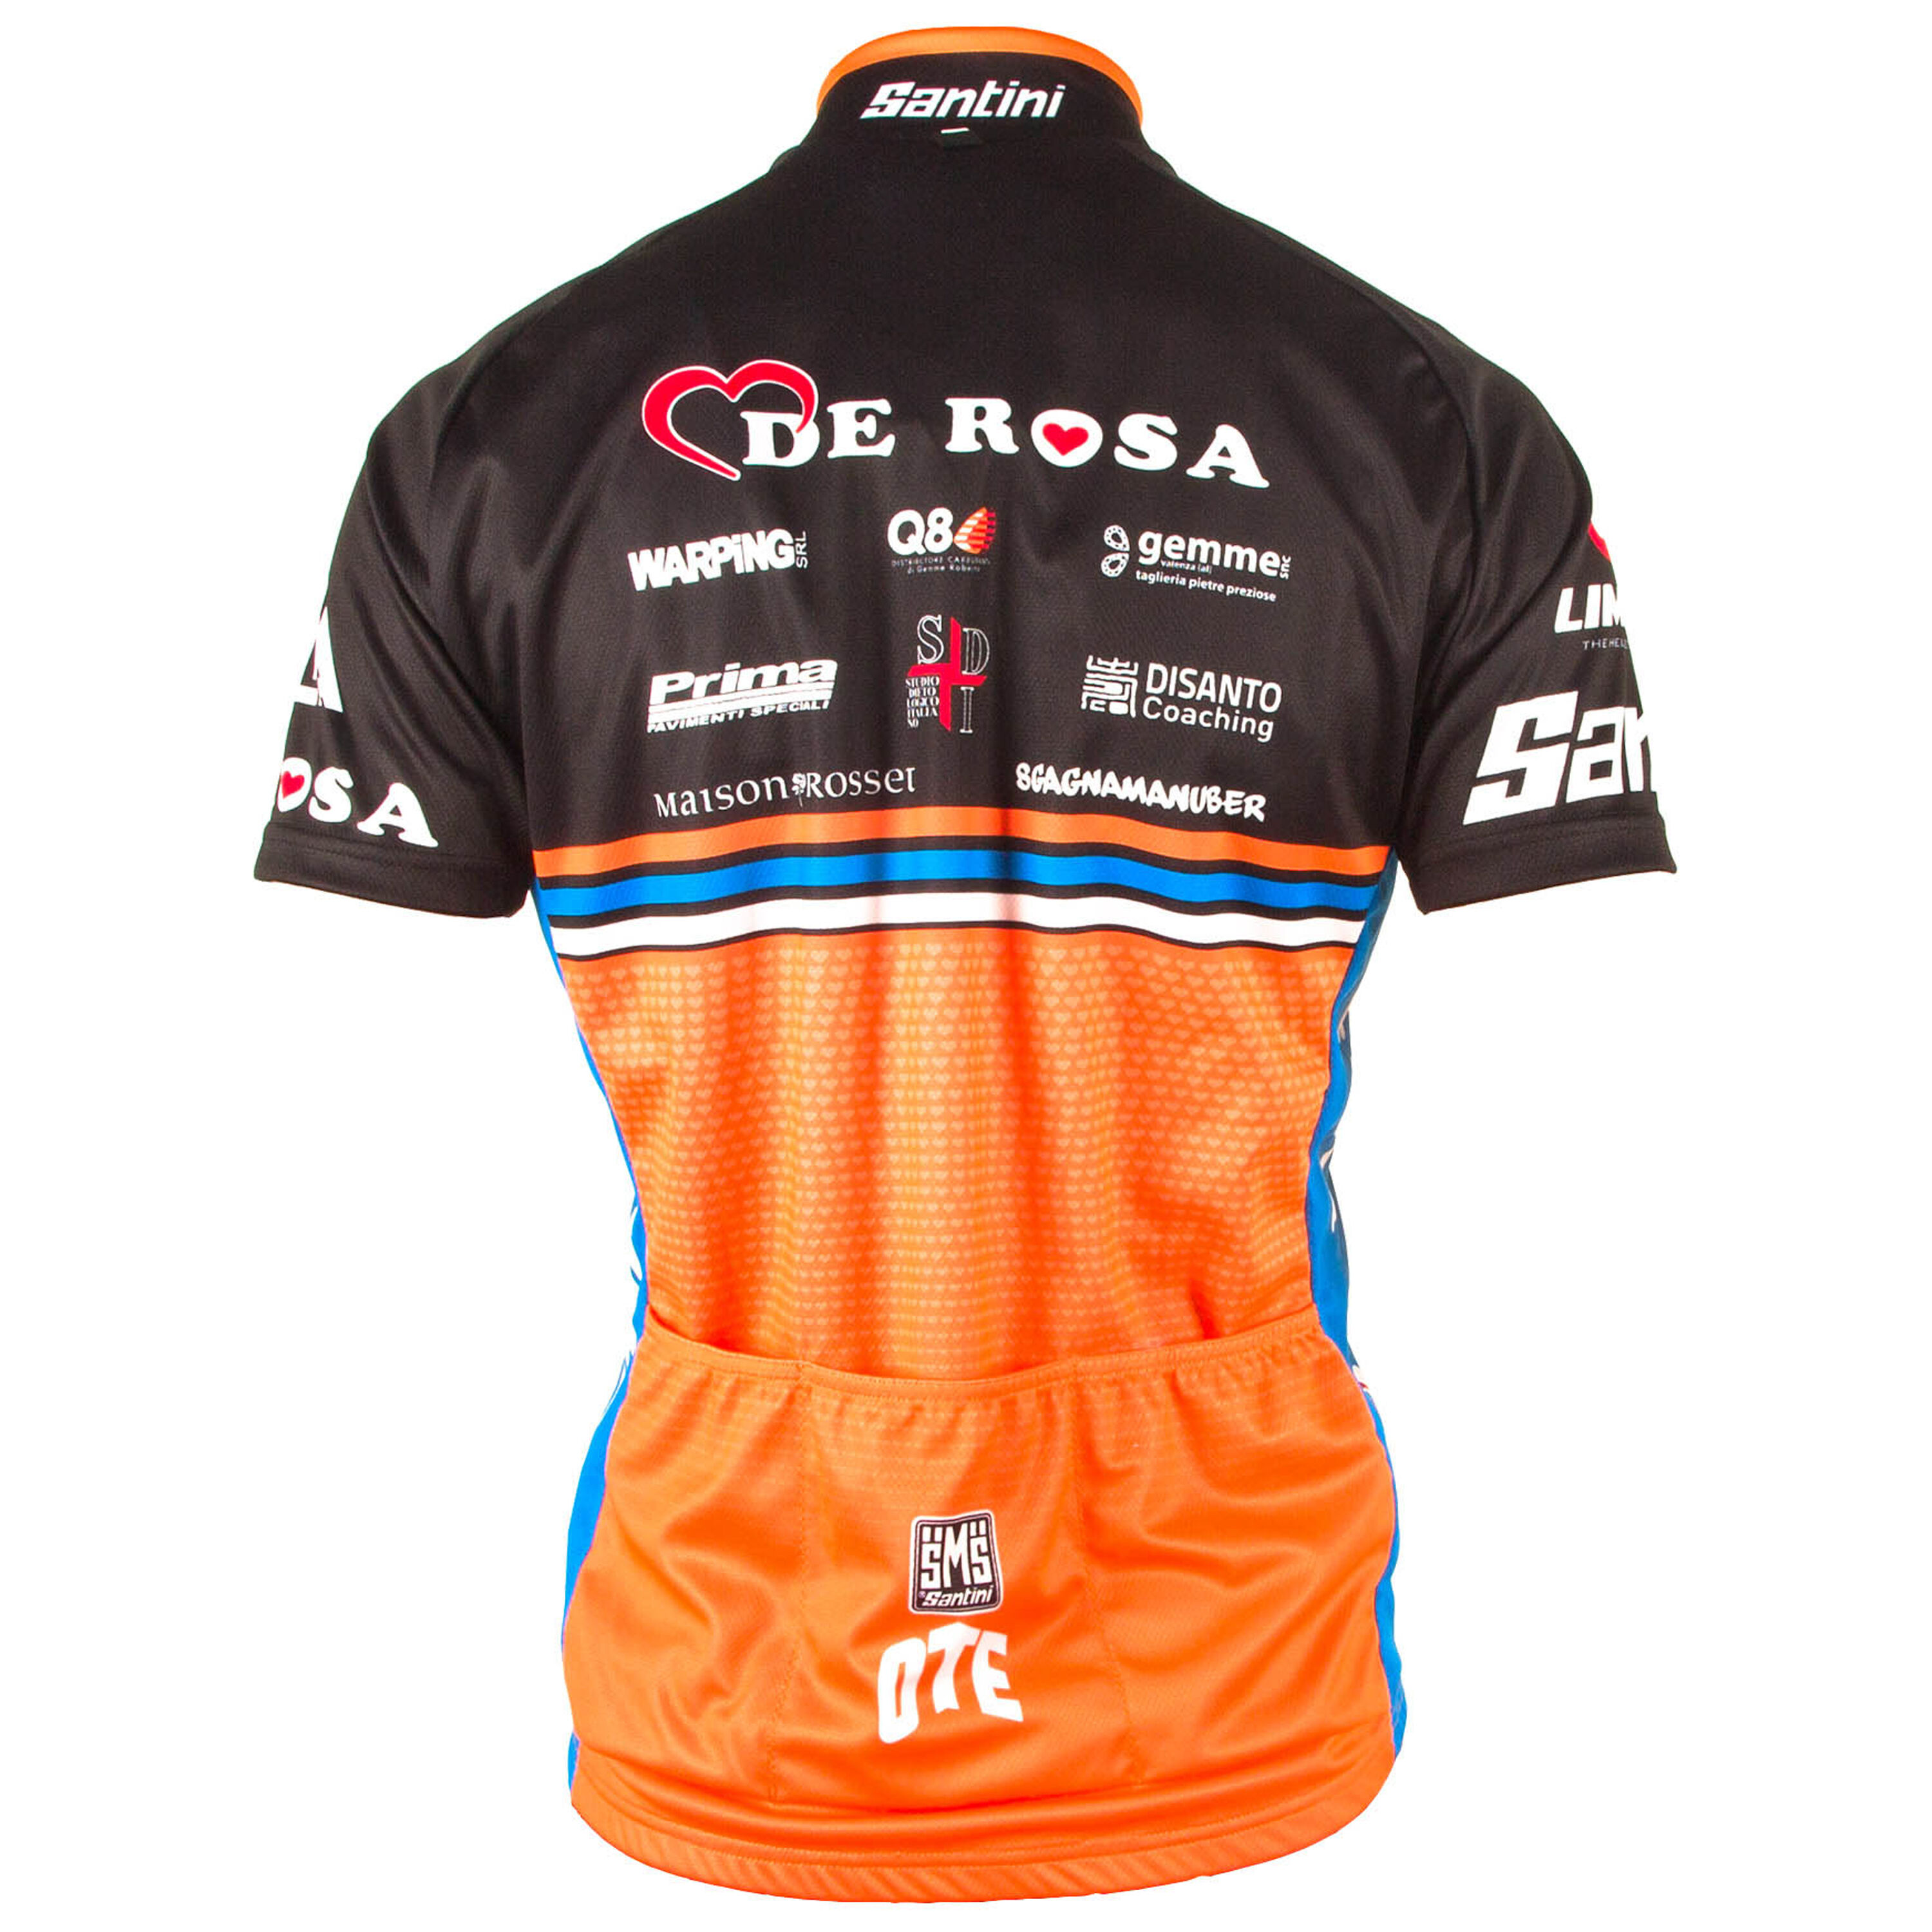 b202c5e79 Santini Team De Rosa jersey. Brand  Santini. Be the first to review this  product